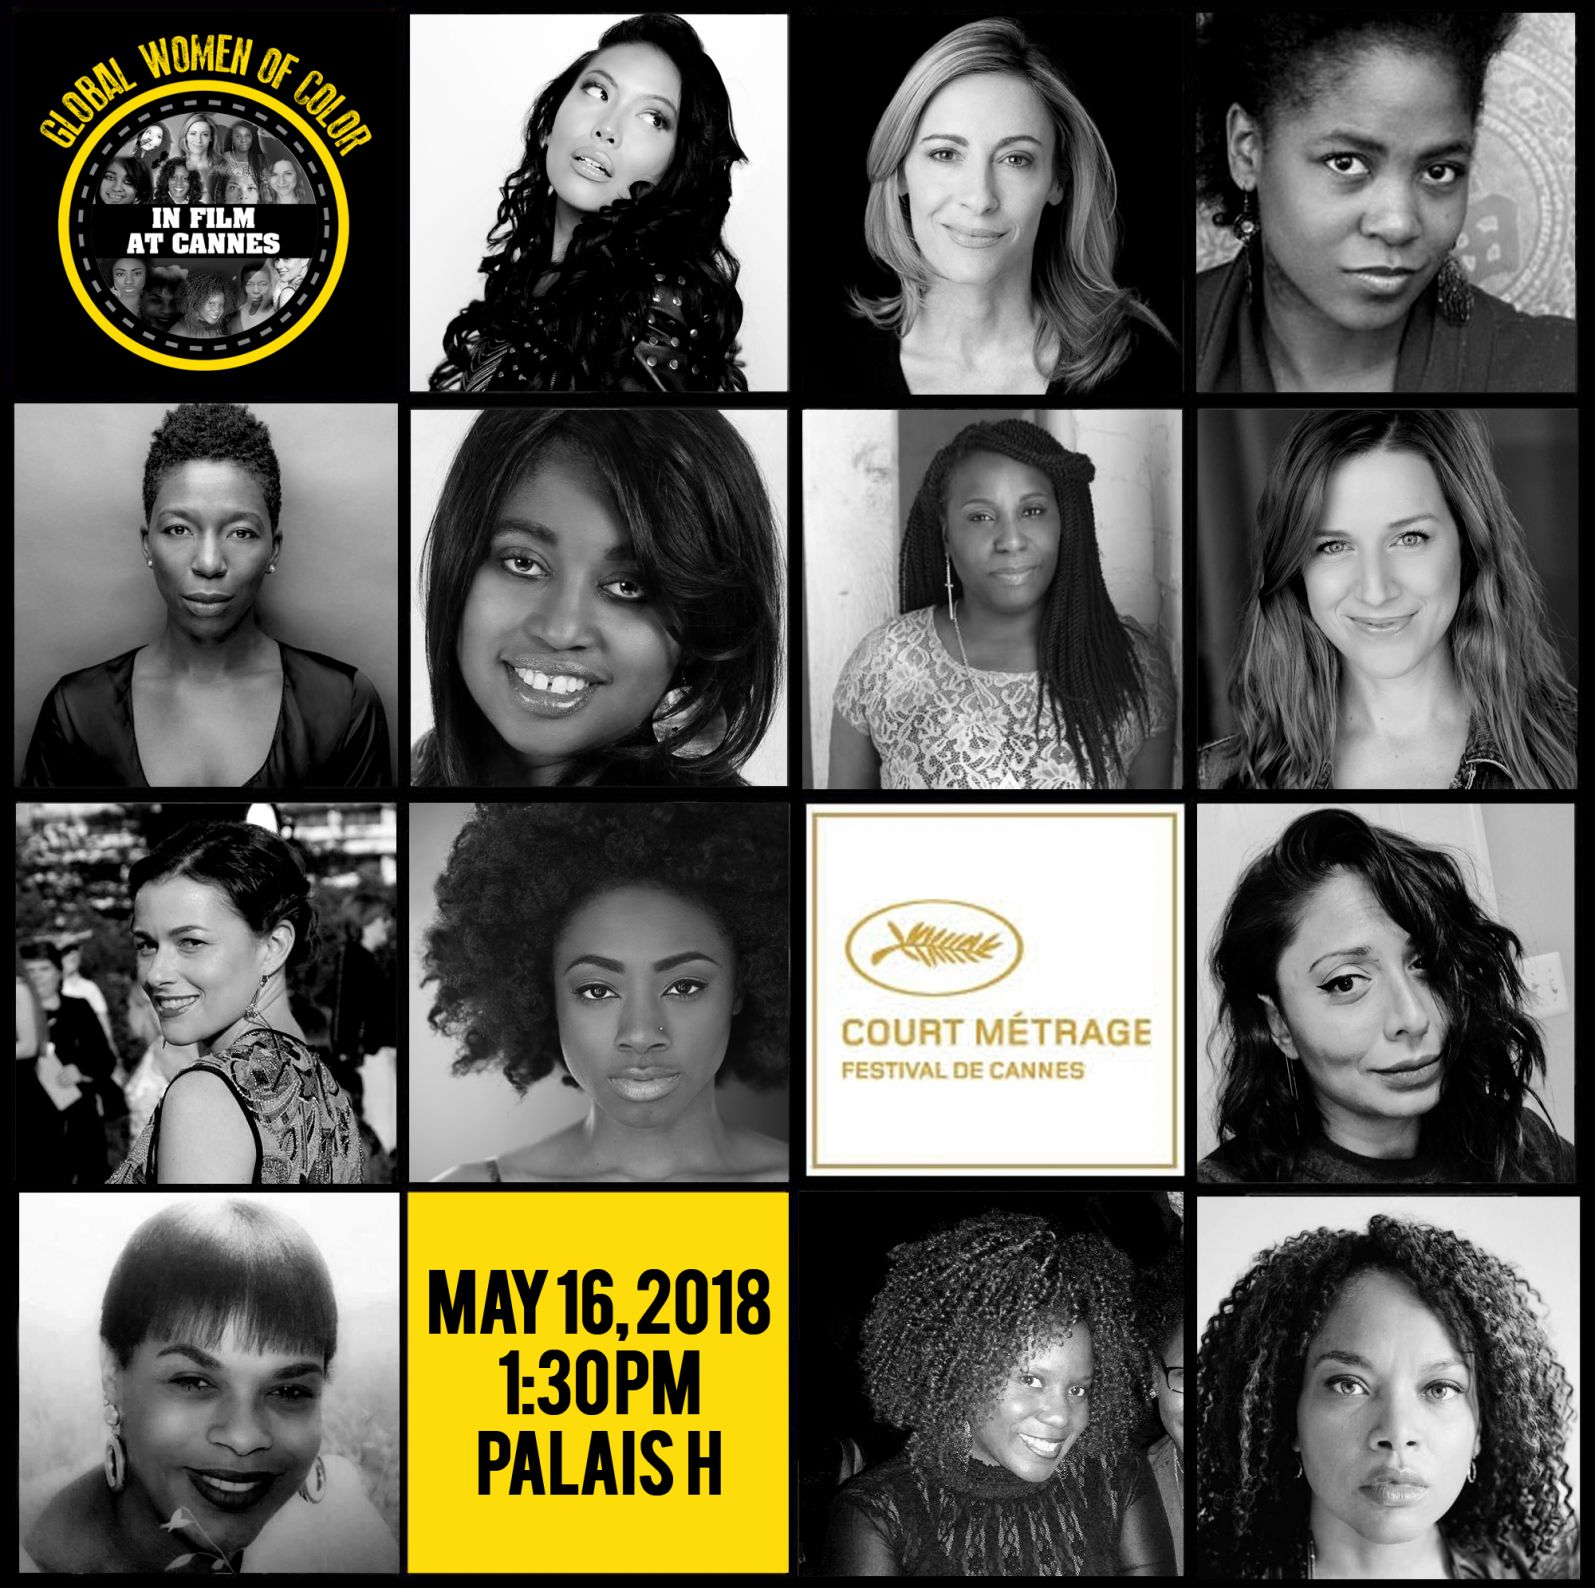 GLOBAL WOMEN OF COLOR IN FILM DAY AT CANNES FILM FESTIVAL 5/16/18 1:30 PM